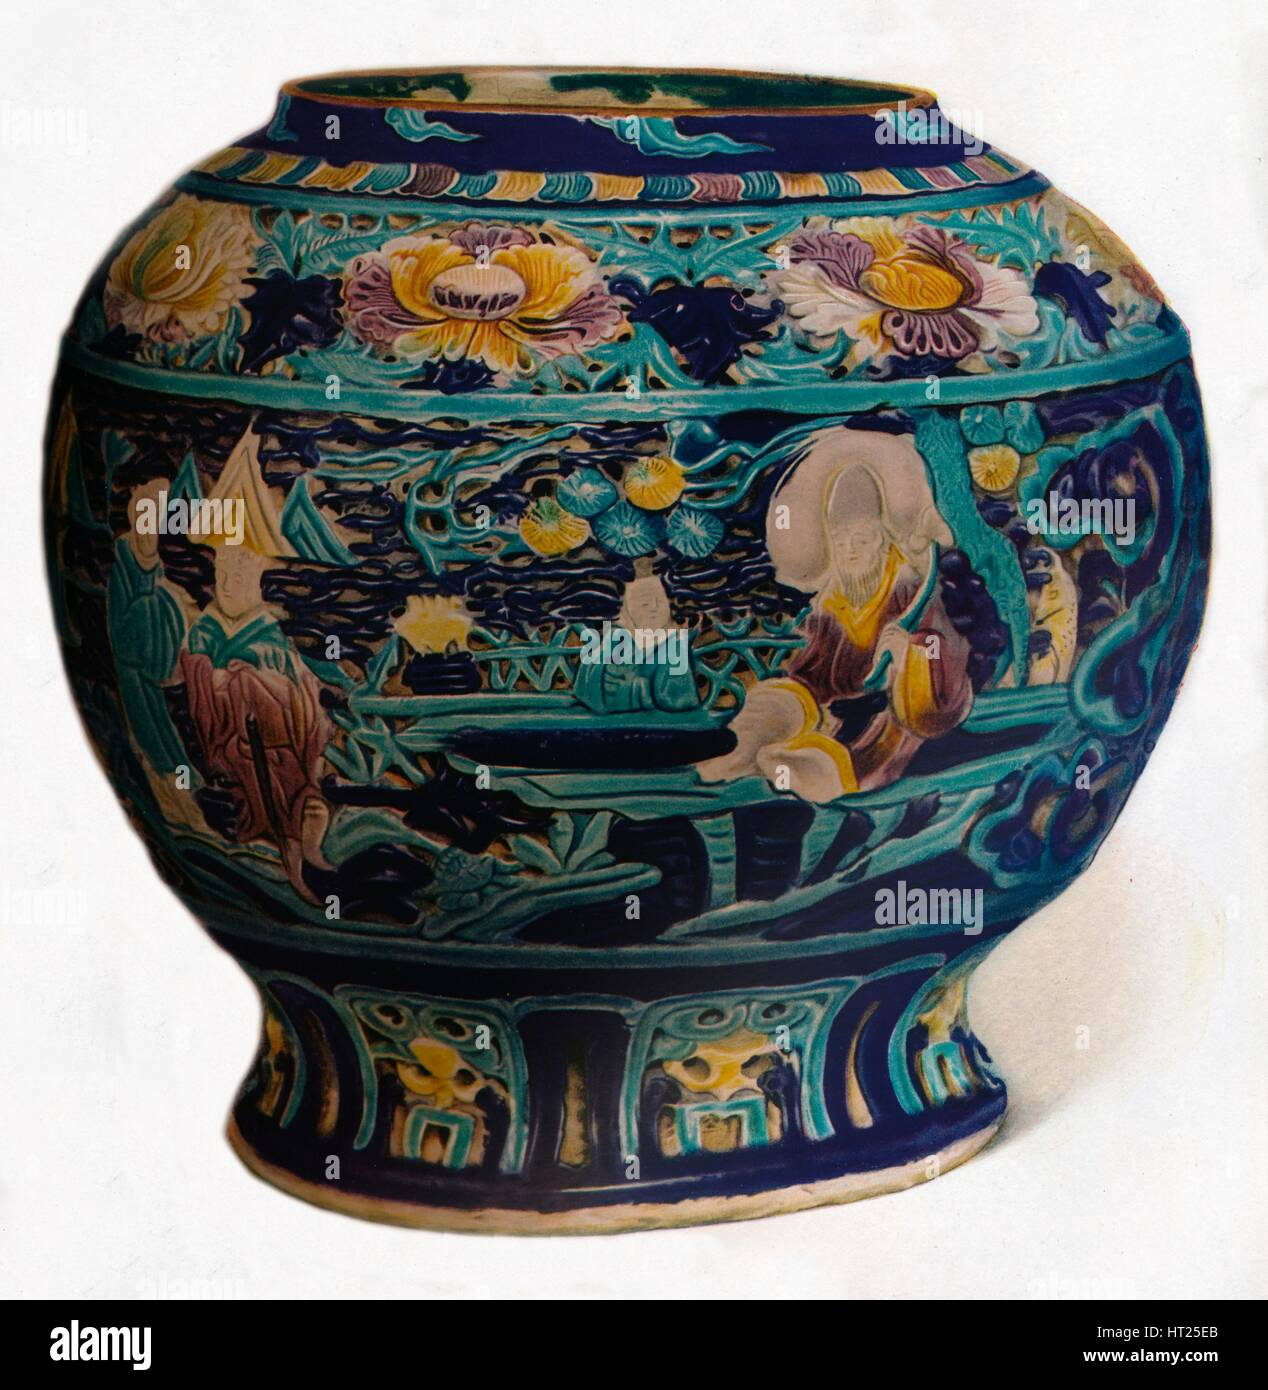 'Fahua jar with openwork design showing the Eight Daoist Immortals', c1550. Artist: Unknown. - Stock Image